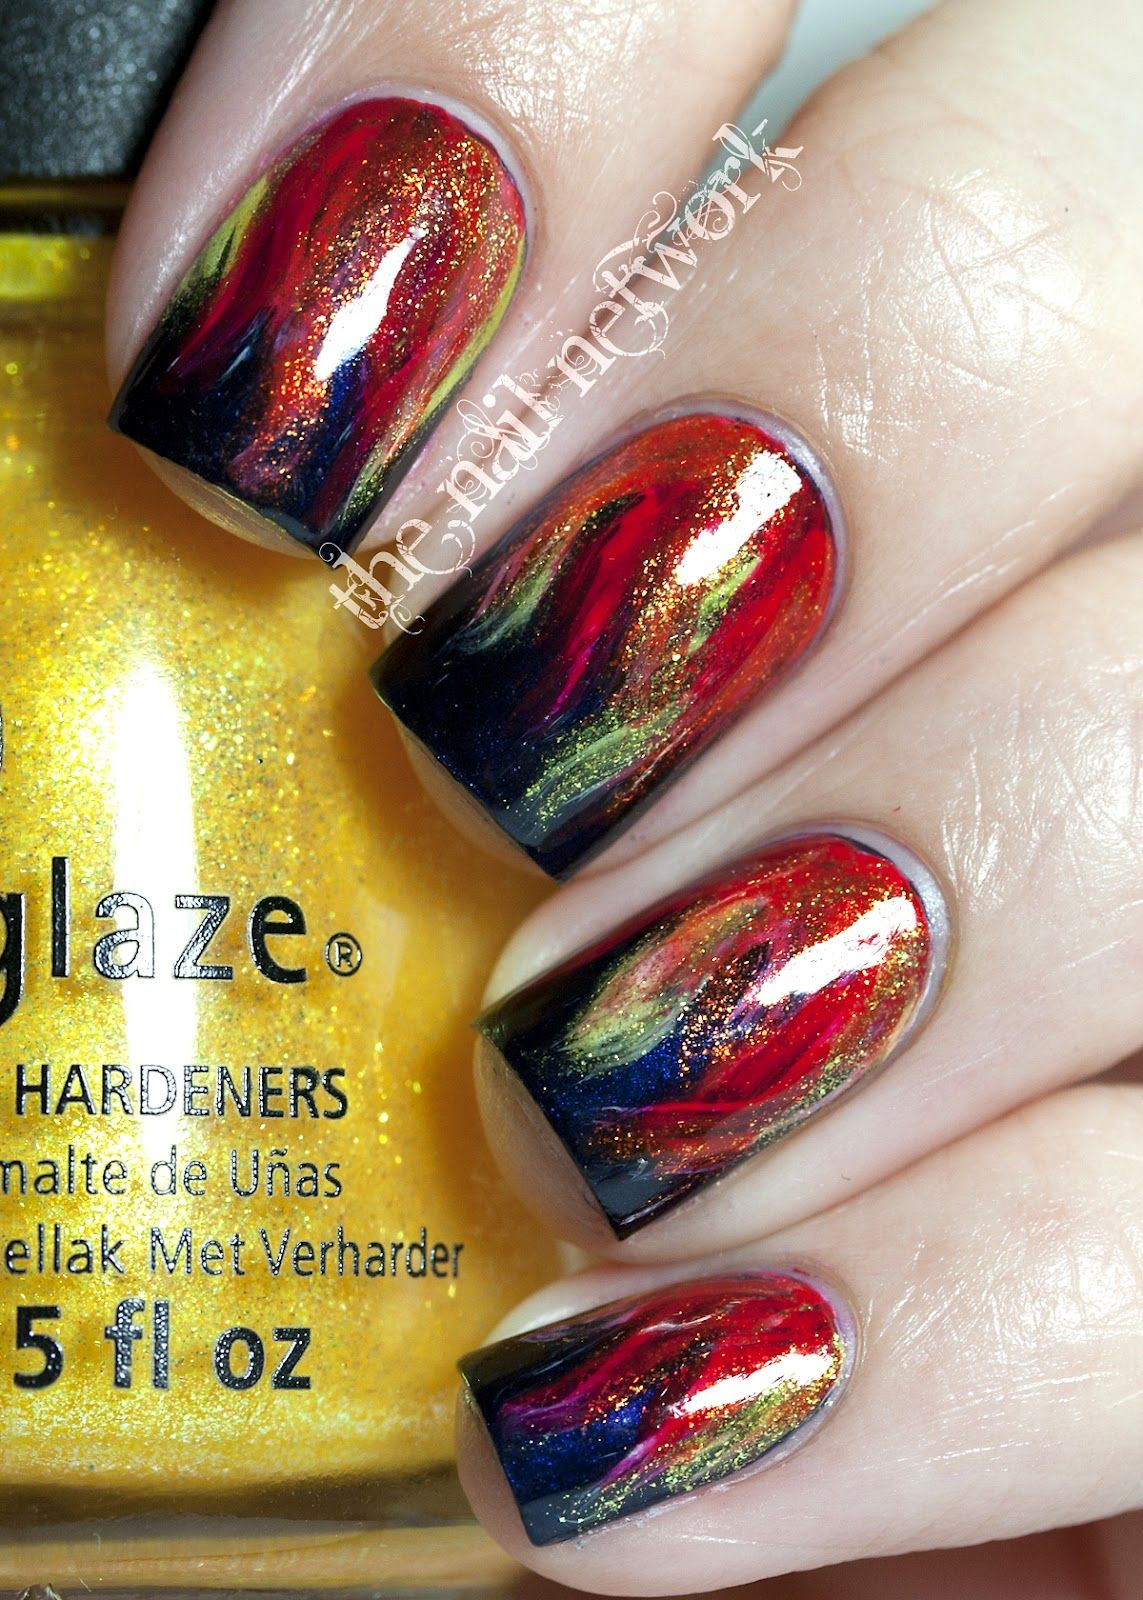 Flame Manicure The Nail Network March 2012 Nails Pinterest